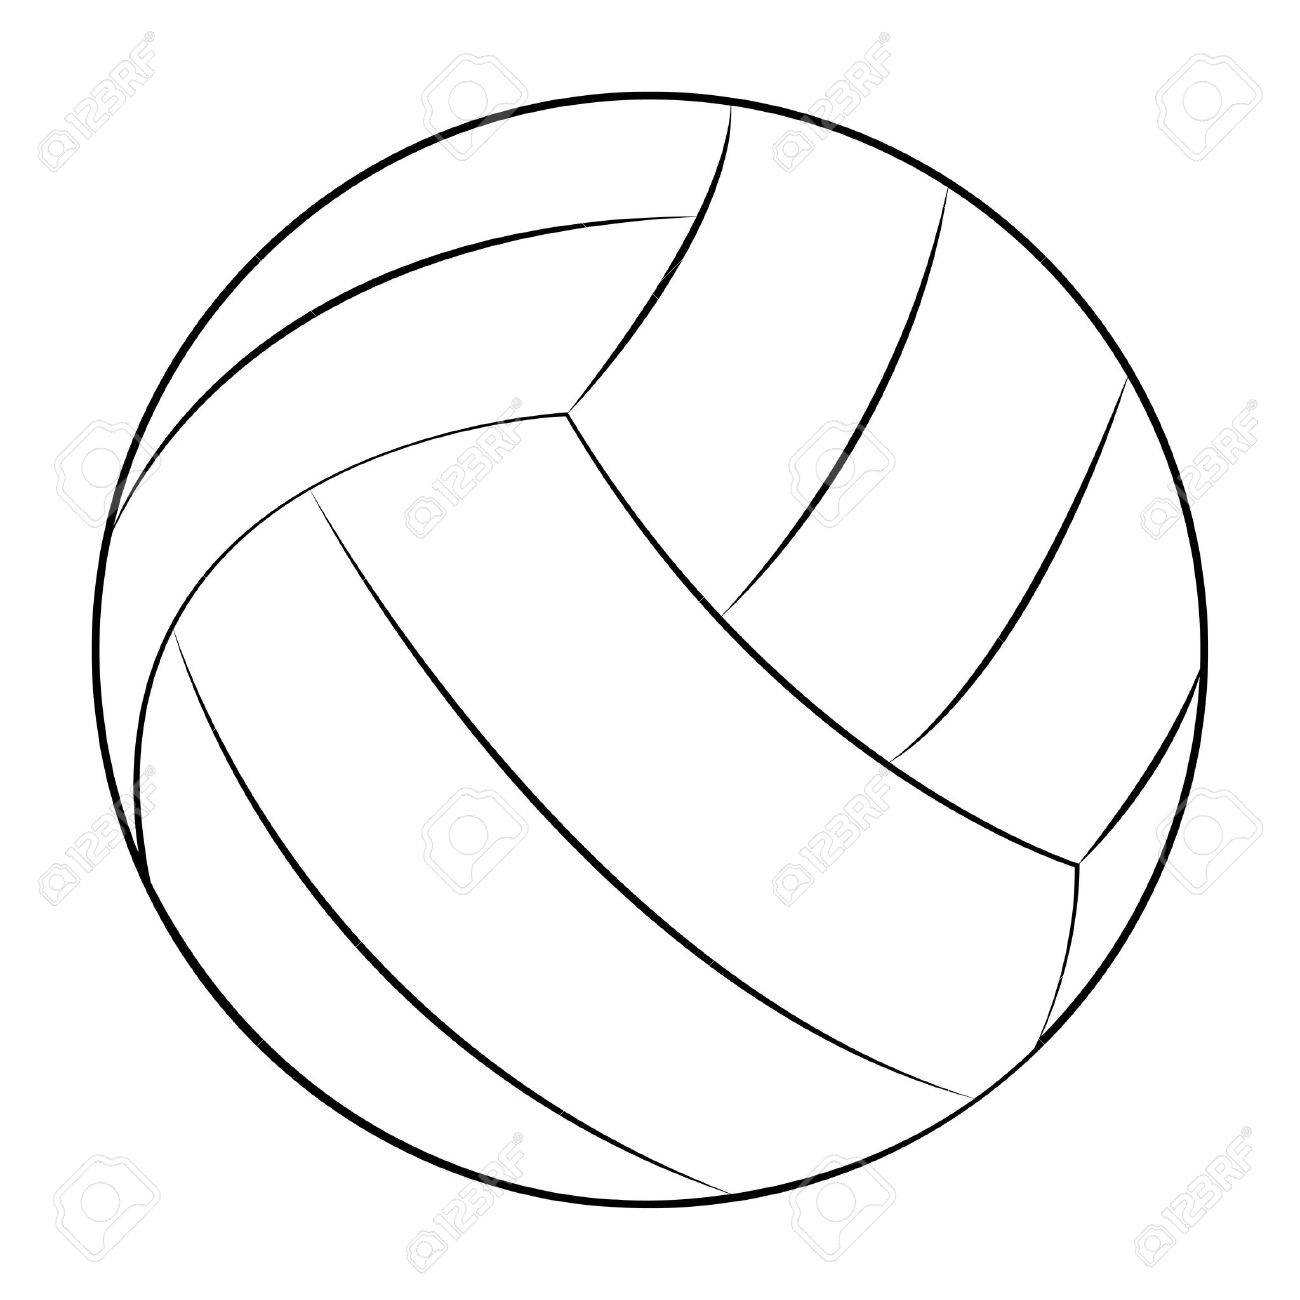 Volleyball clipart outline, Volleyball outline Transparent.